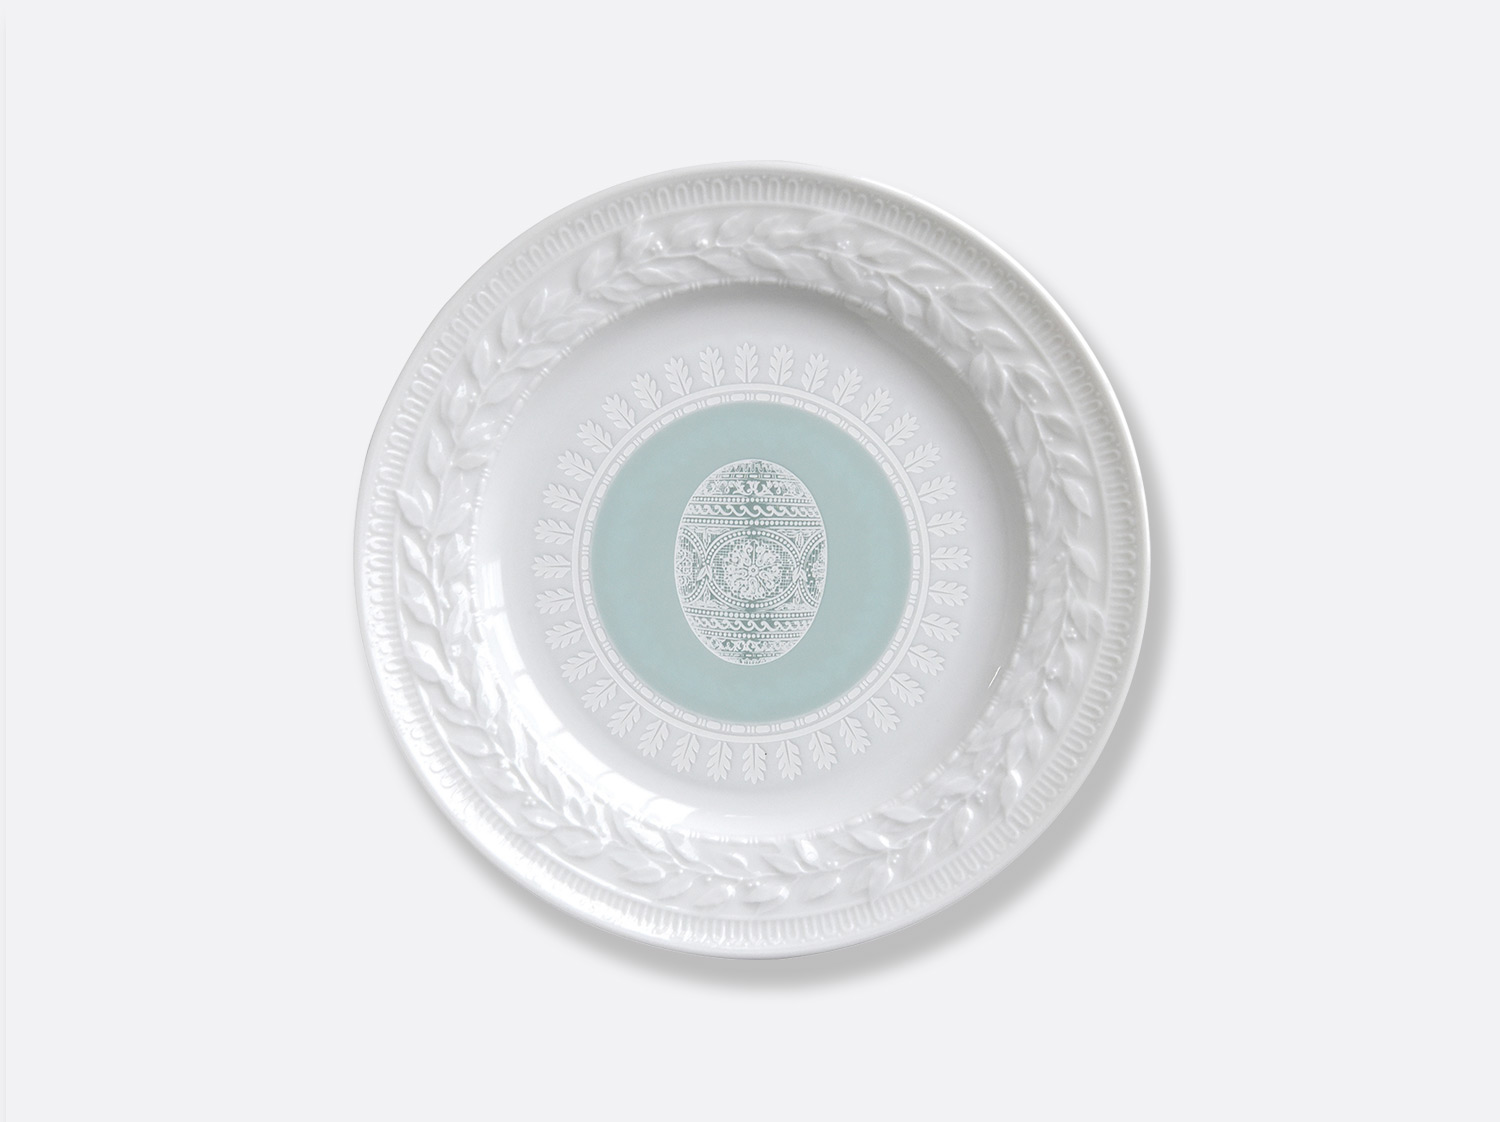 China Green salad plate 21 cm of the collection Louvre pâques vert | Bernardaud